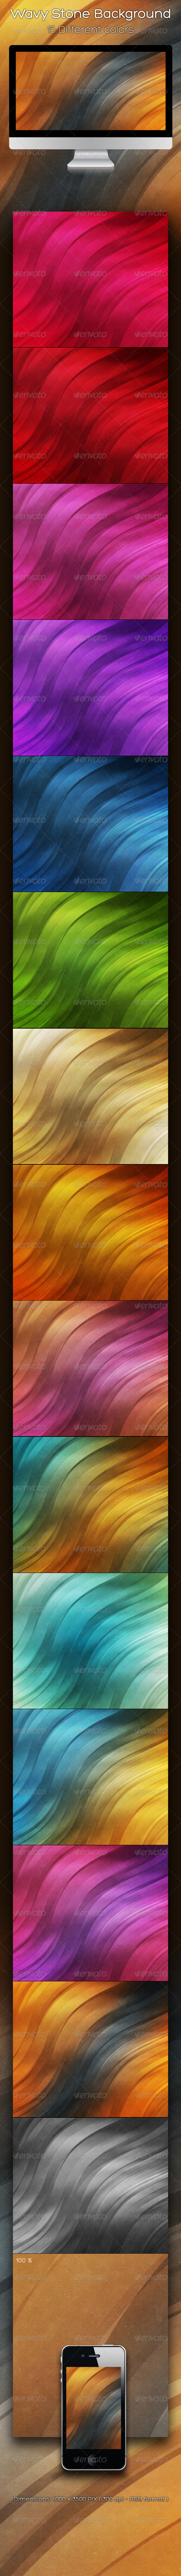 GraphicRiver Wavy Stone Background 2261079